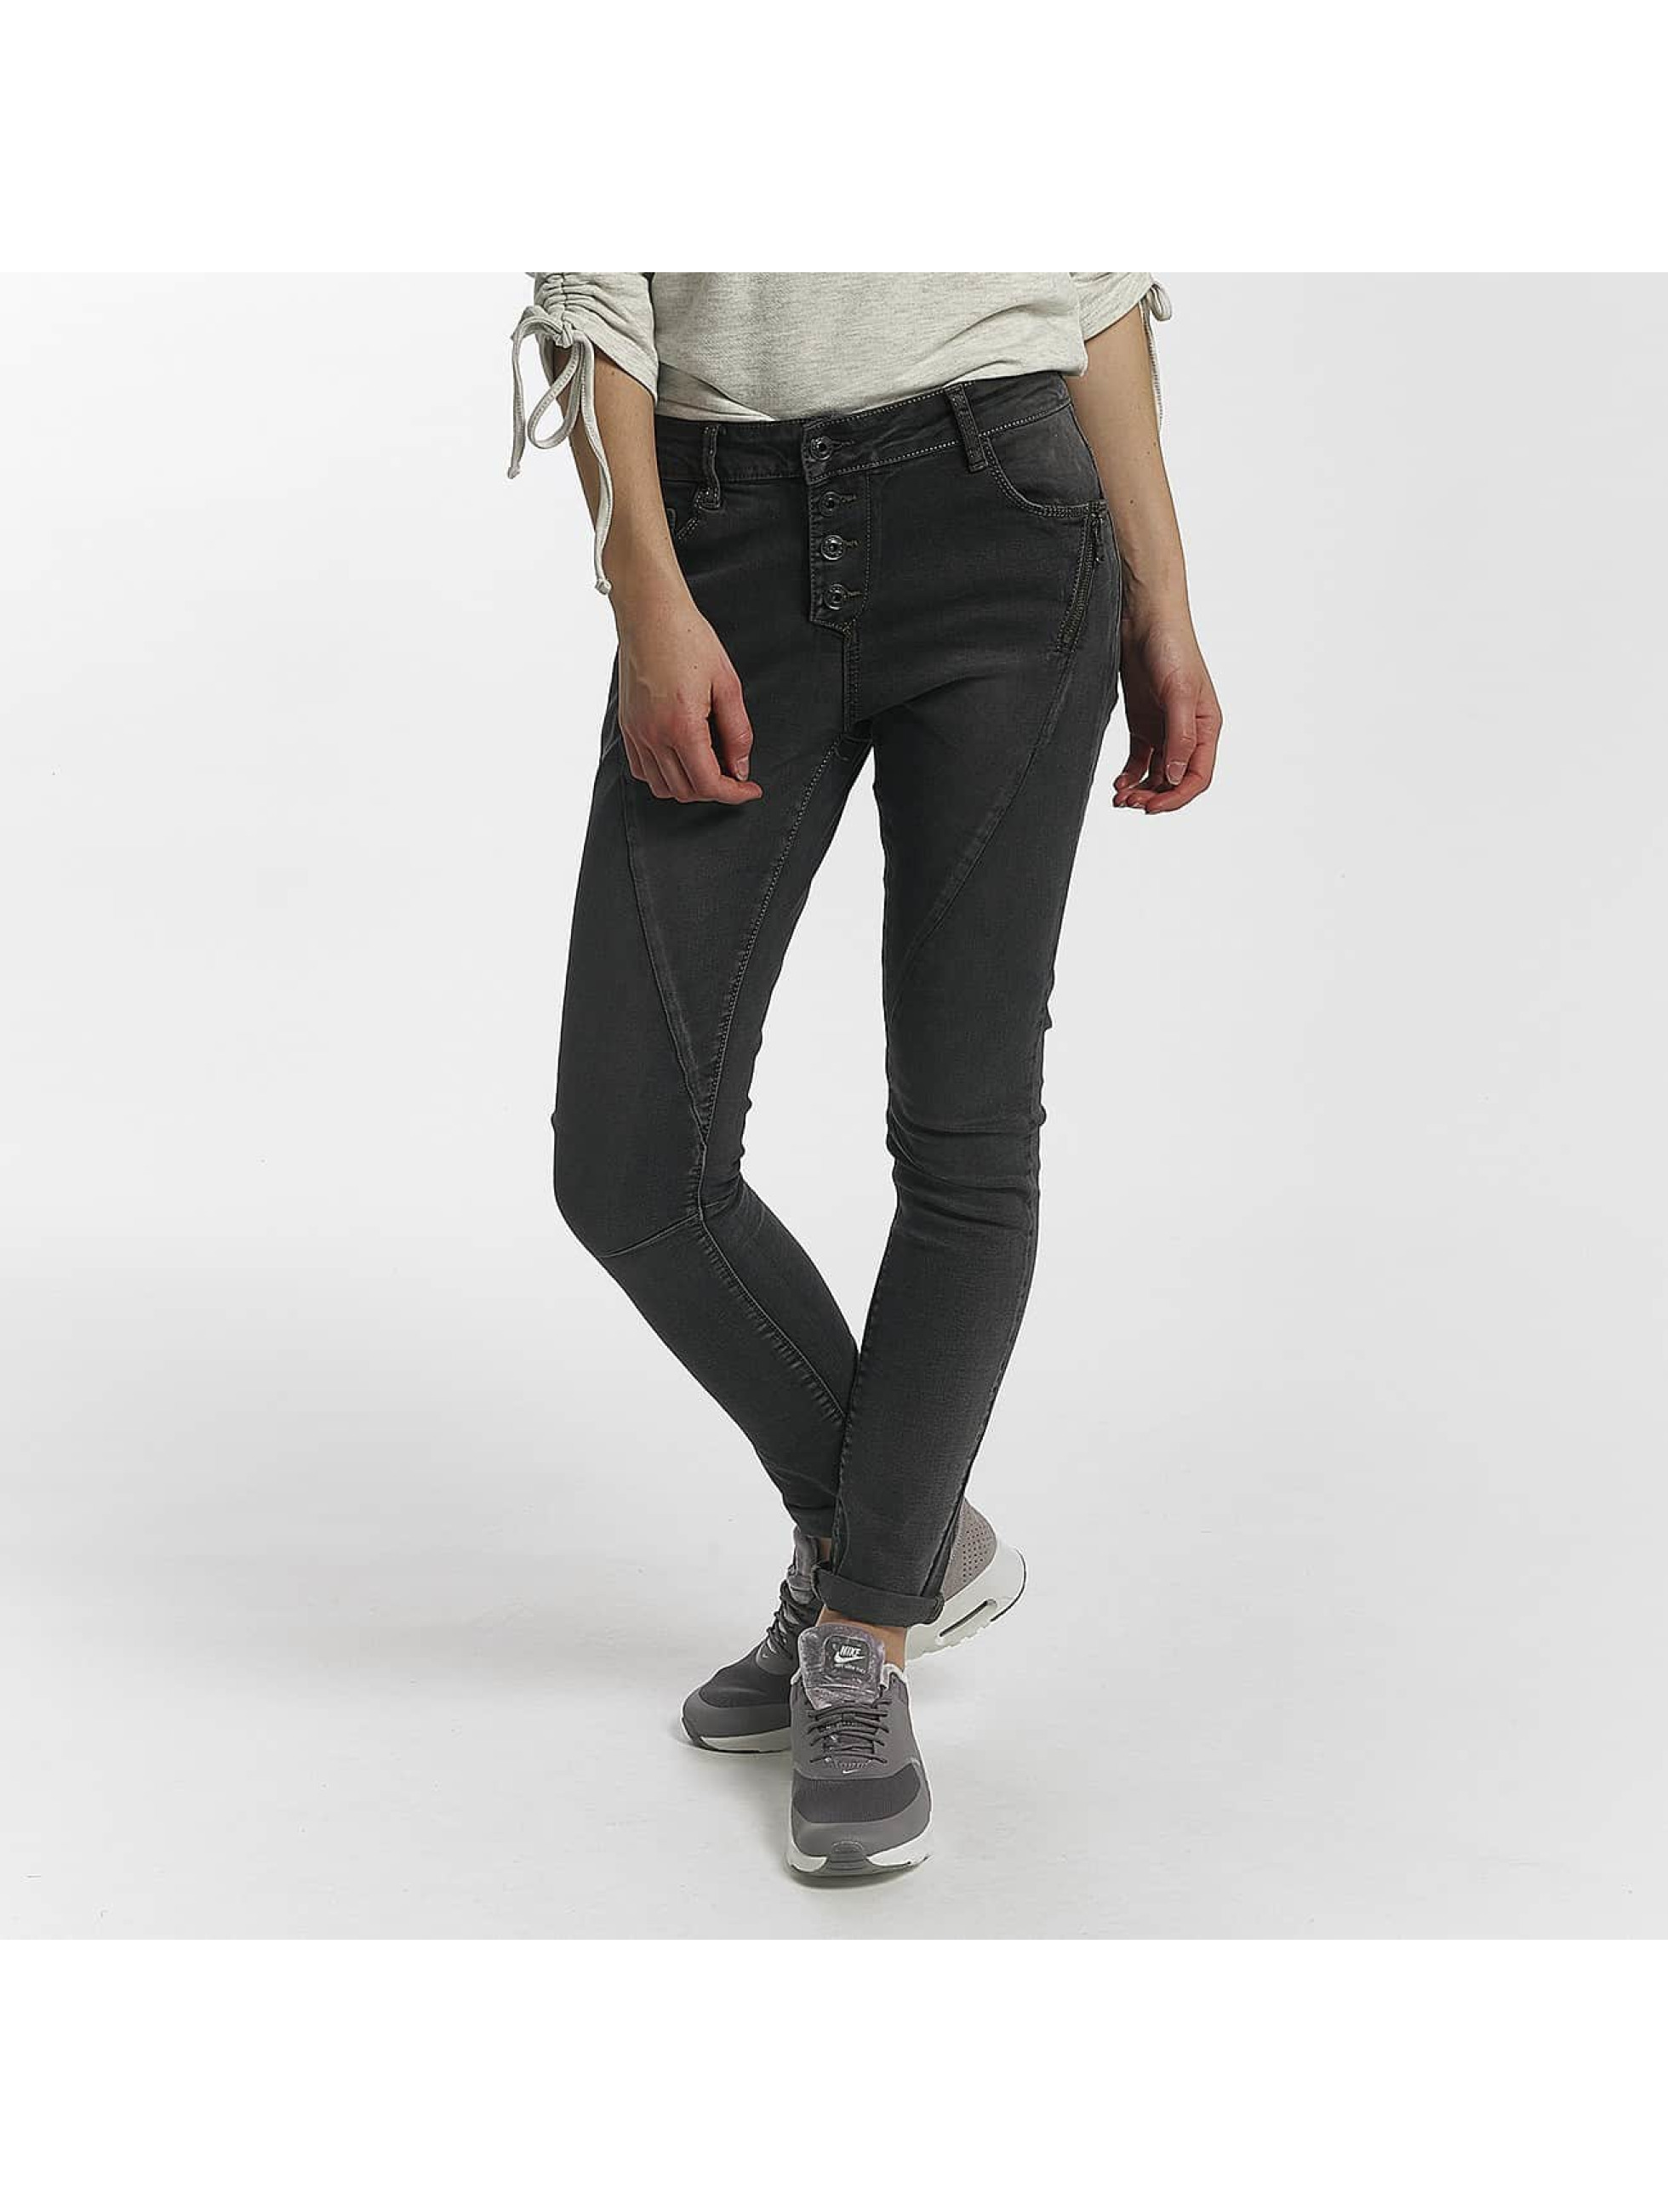 Leg Kings Skinny Jeans Zac Zoe gray